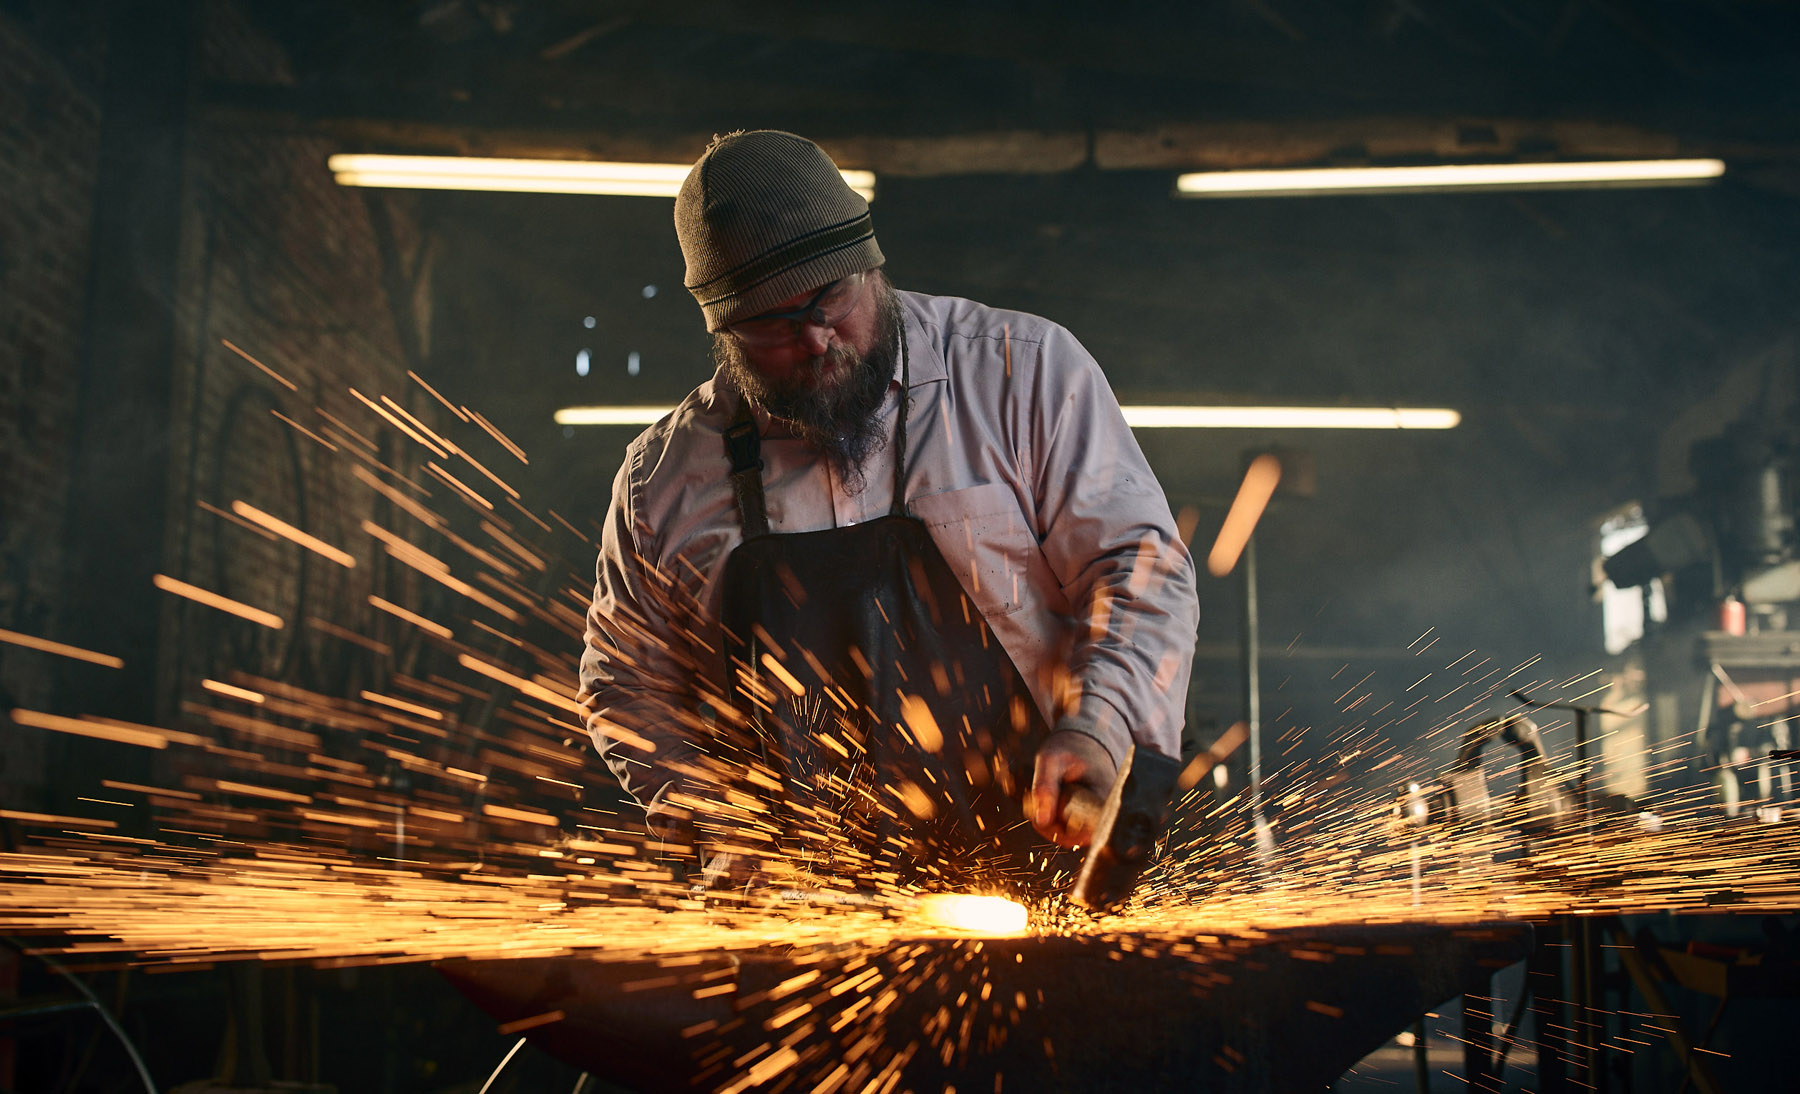 Sparks fly as the blacksmith works